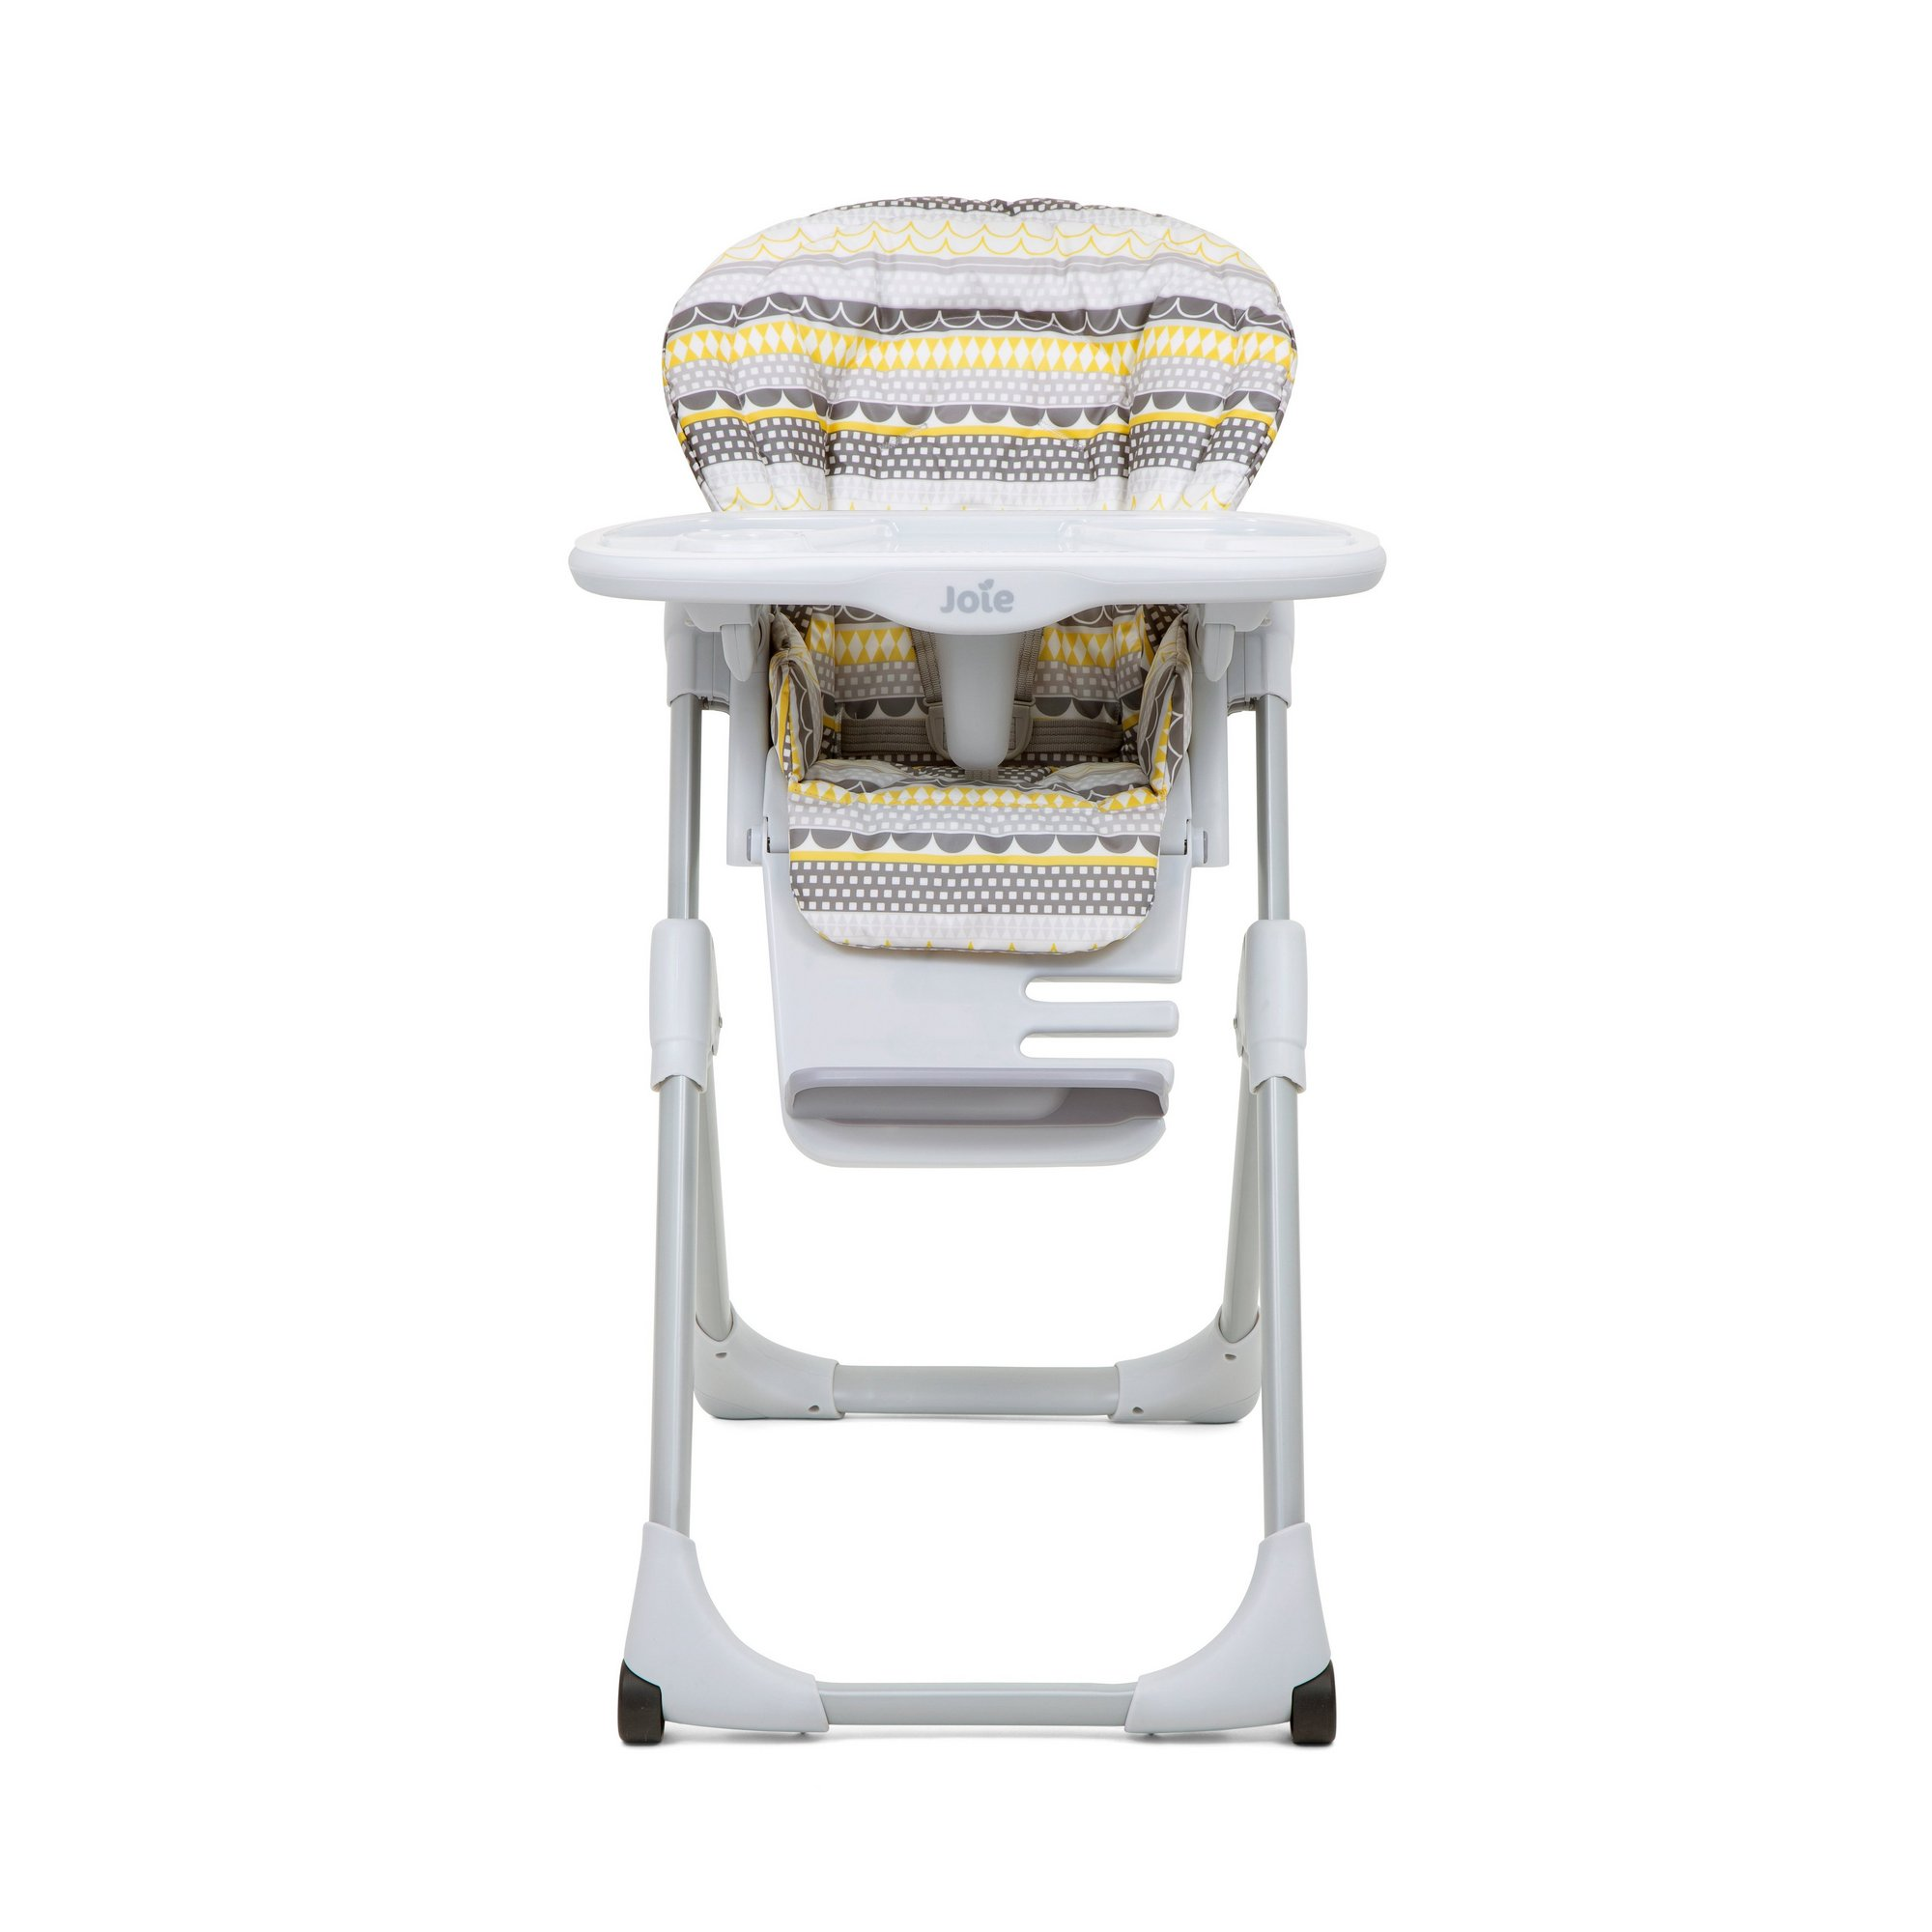 Image of Joie Baby Mimzy Heyday Adjustable Highchair